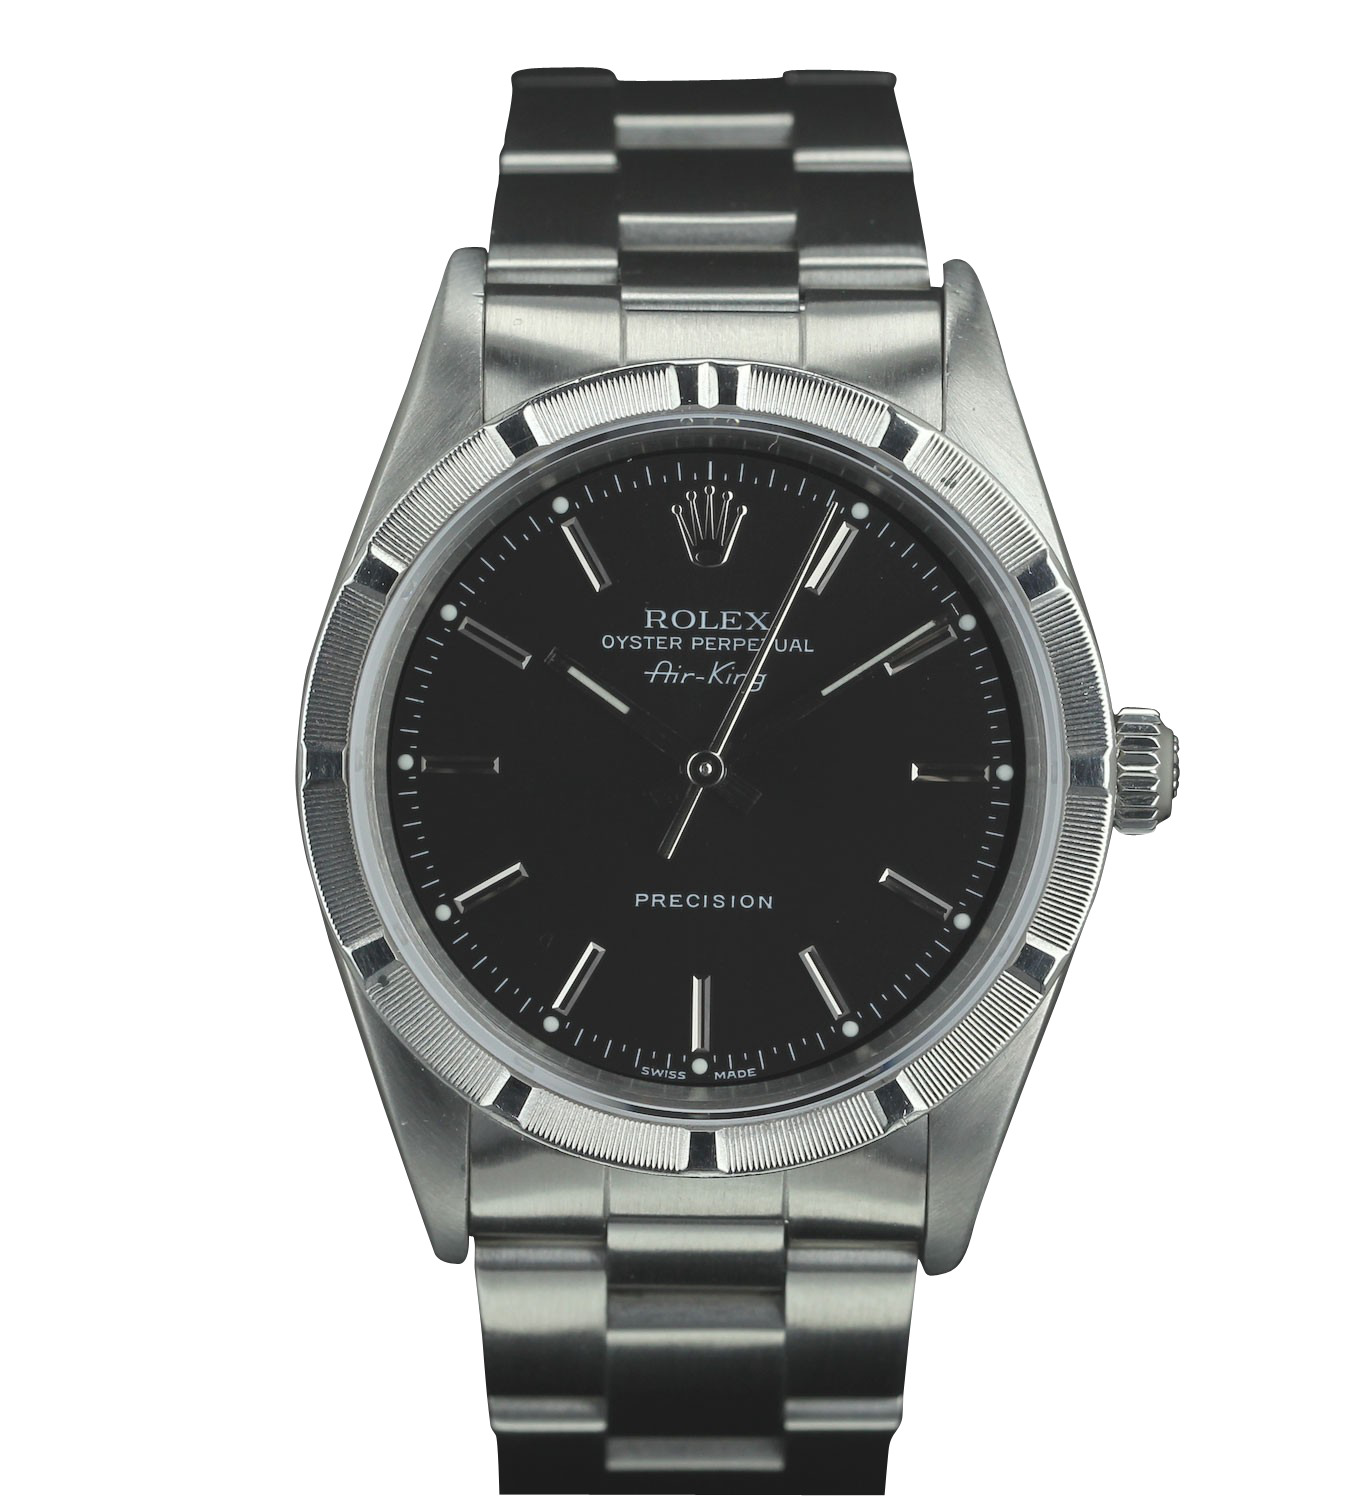 Rolex collection other models rolex air king 14010 black dial premium watch for Rolex air king